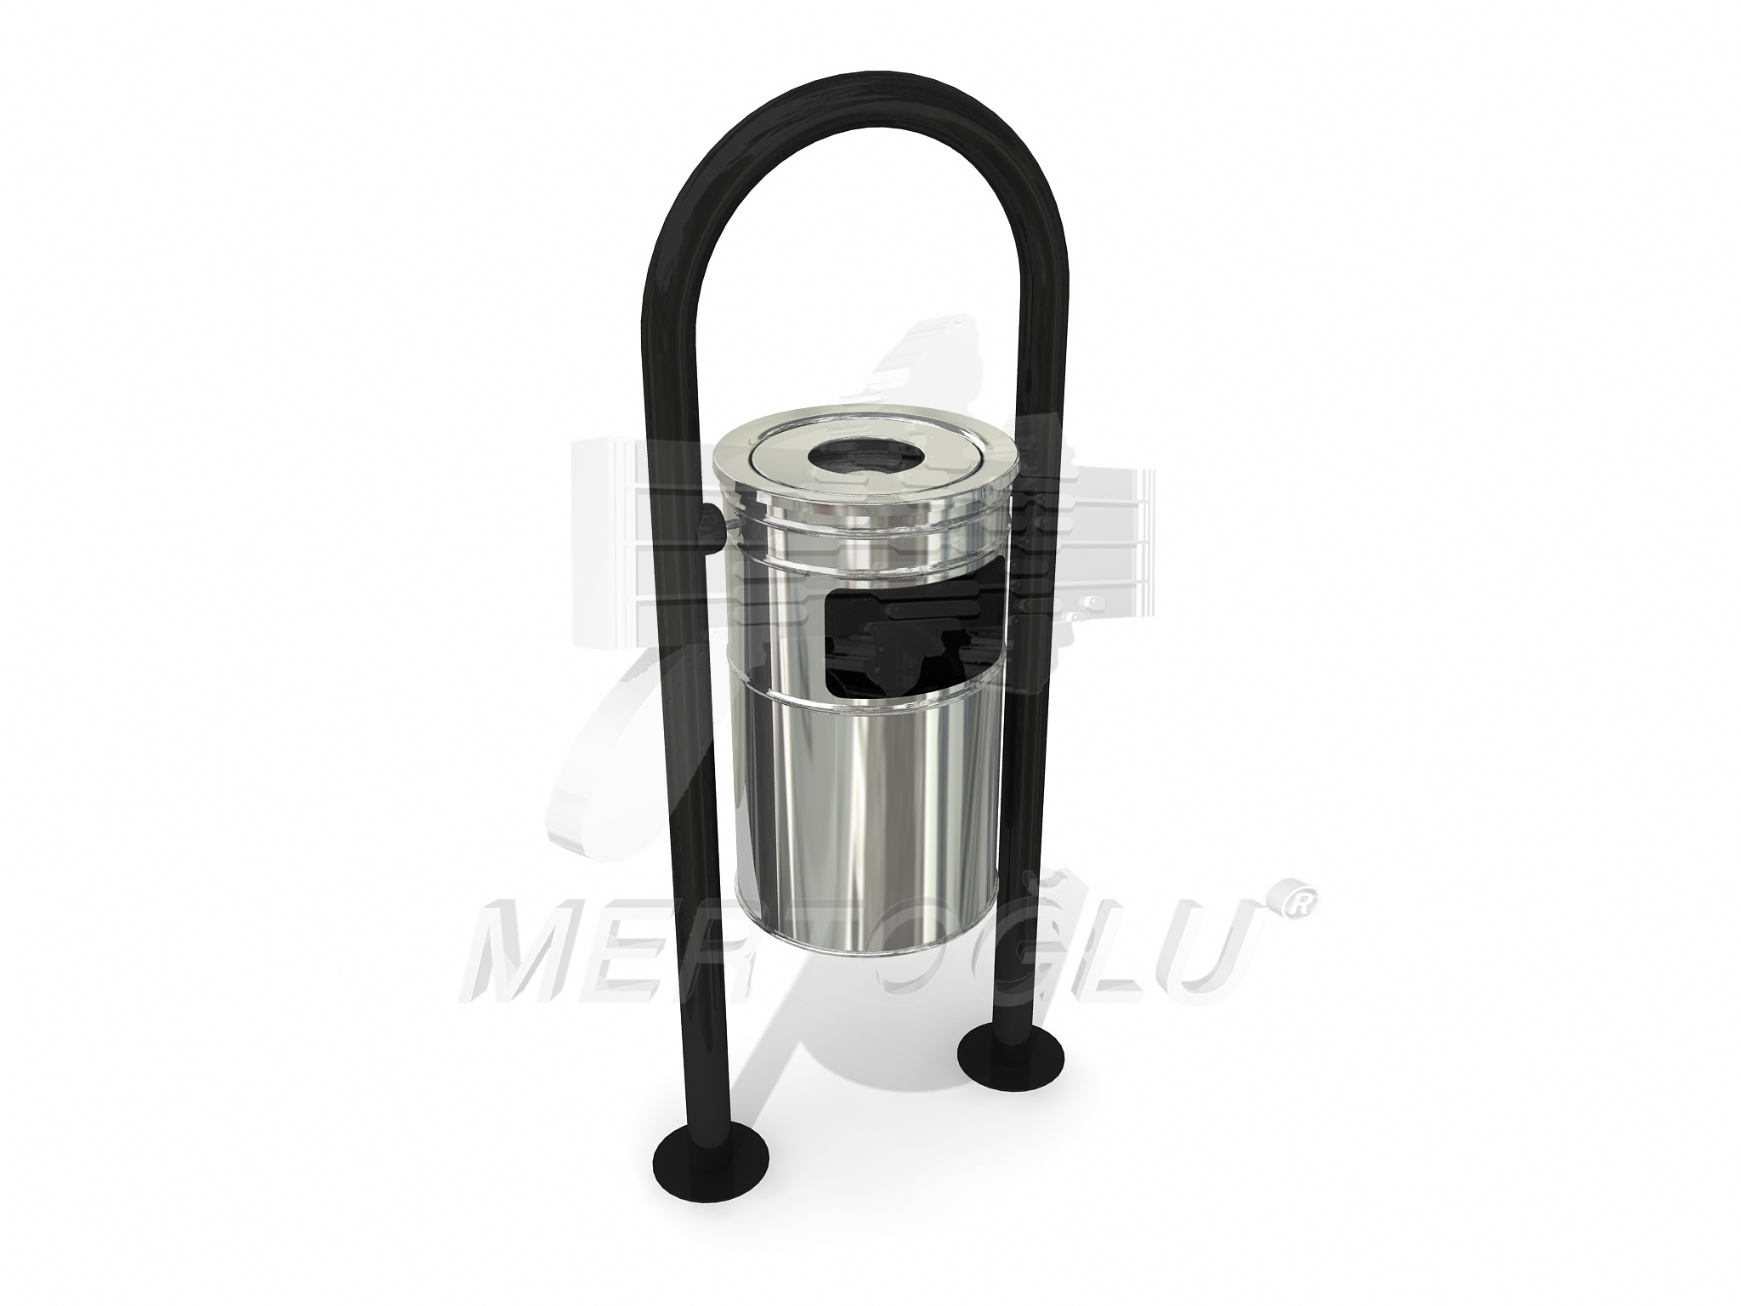 Outdoor Litter Bins-Mbk-159a